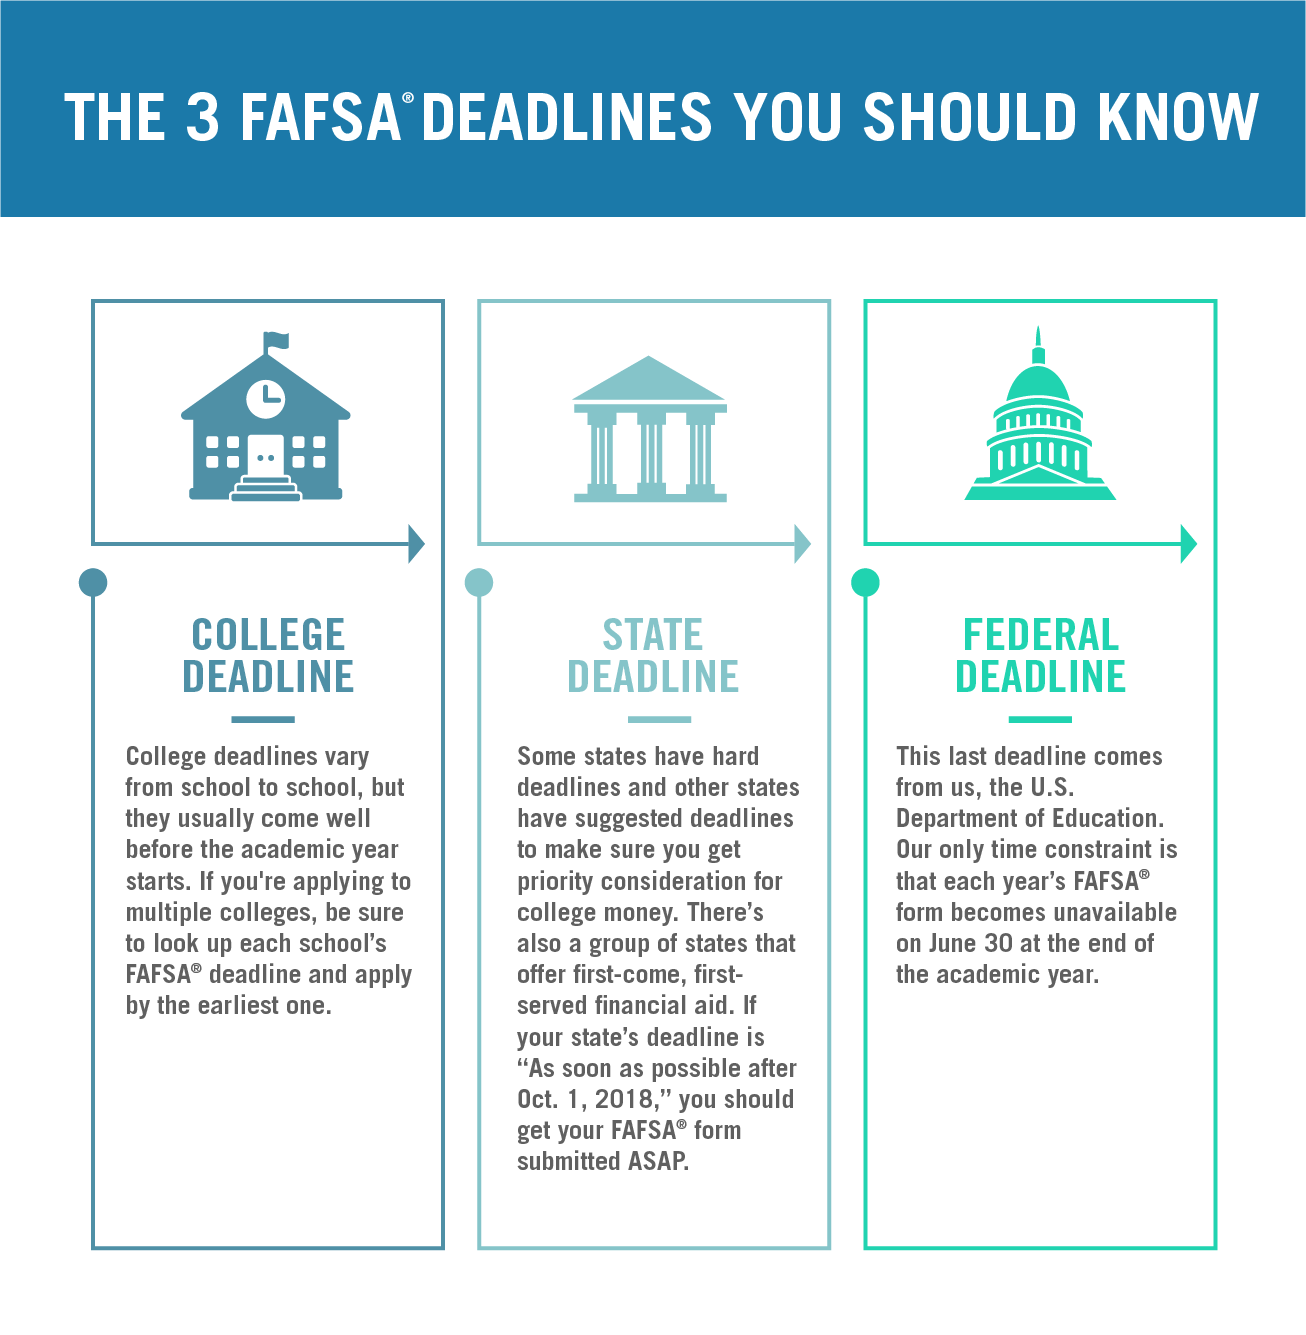 Link to a Twitter Post posted by the Federal Student Aid about FAFSA Deadlines